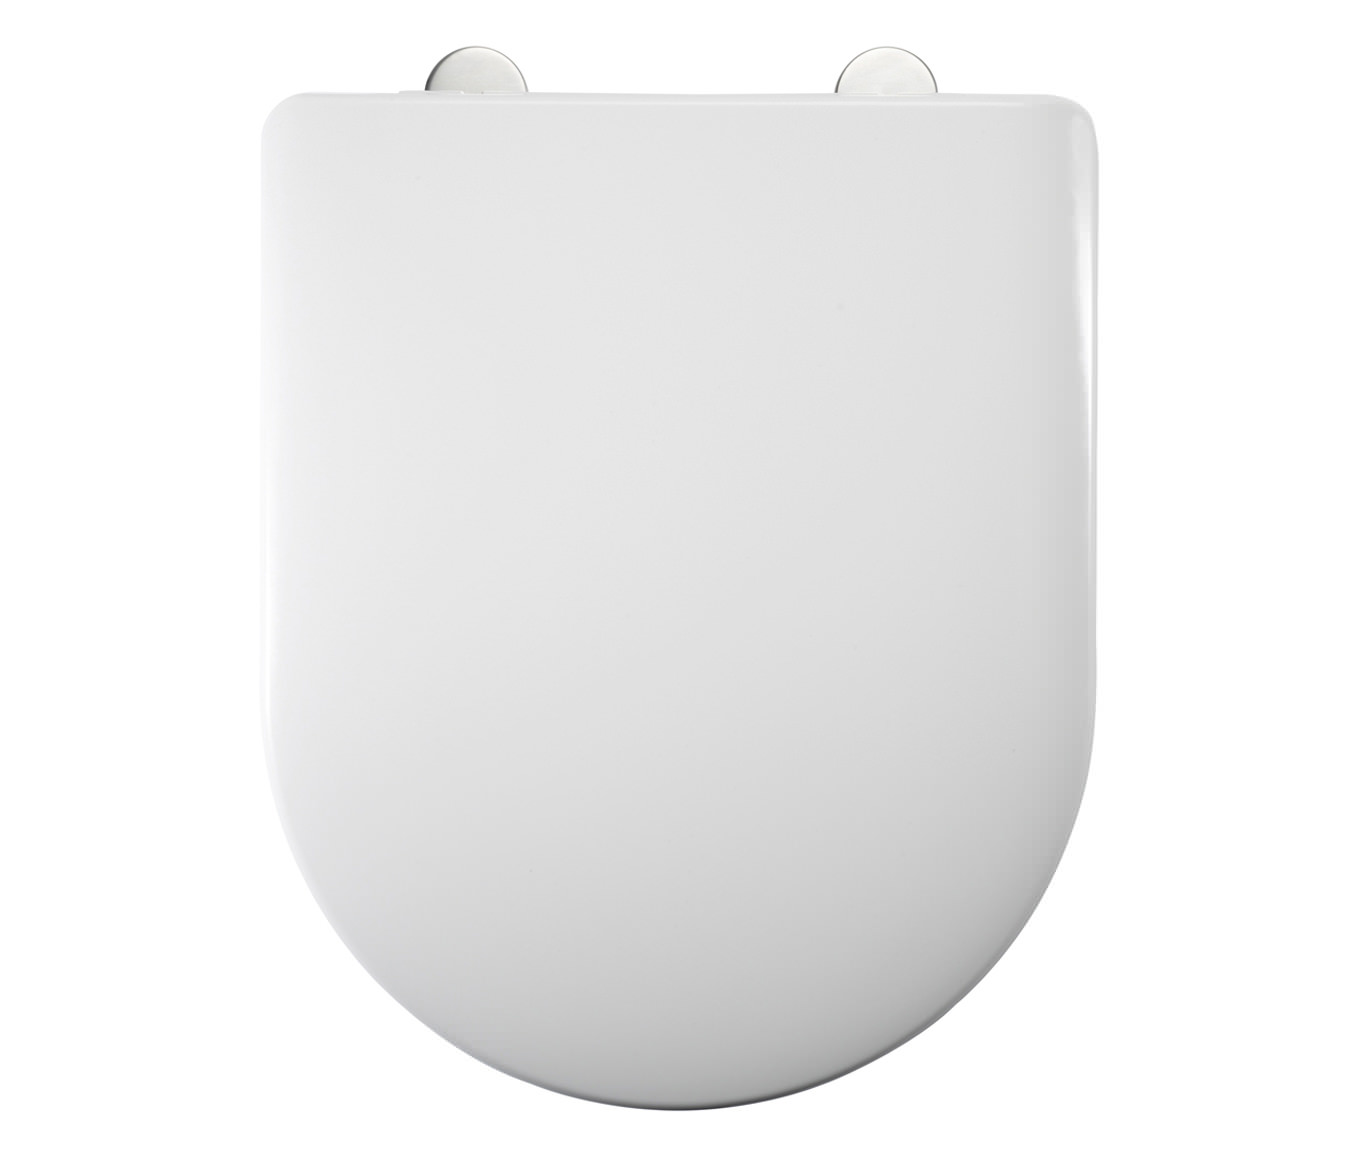 Roper Rhodes Define Soft Closing Toilet Seat White 8704wsc